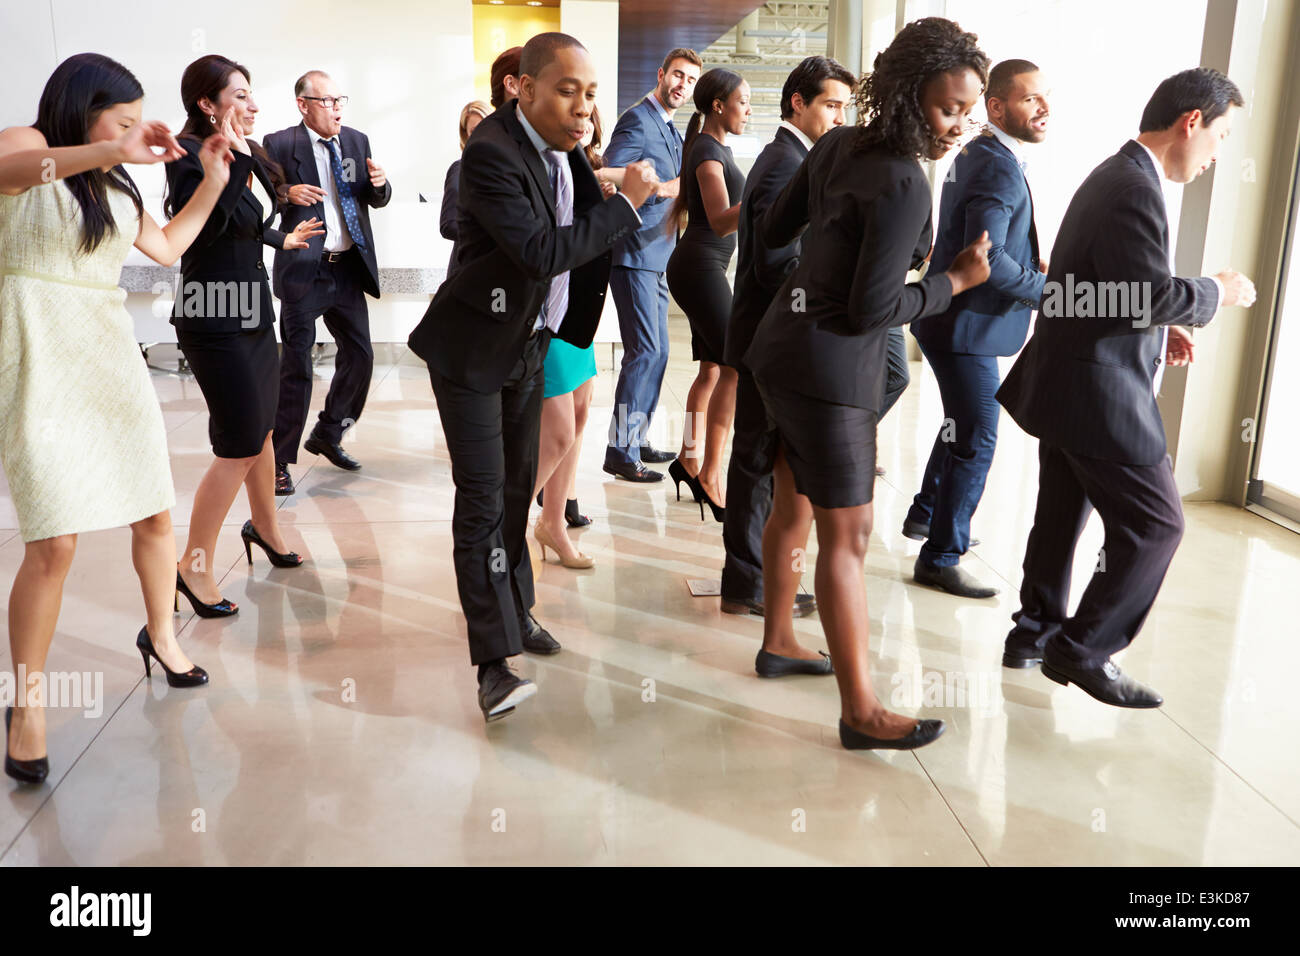 Businessmen And Businesswomen Dancing In Office Lobby - Stock Image